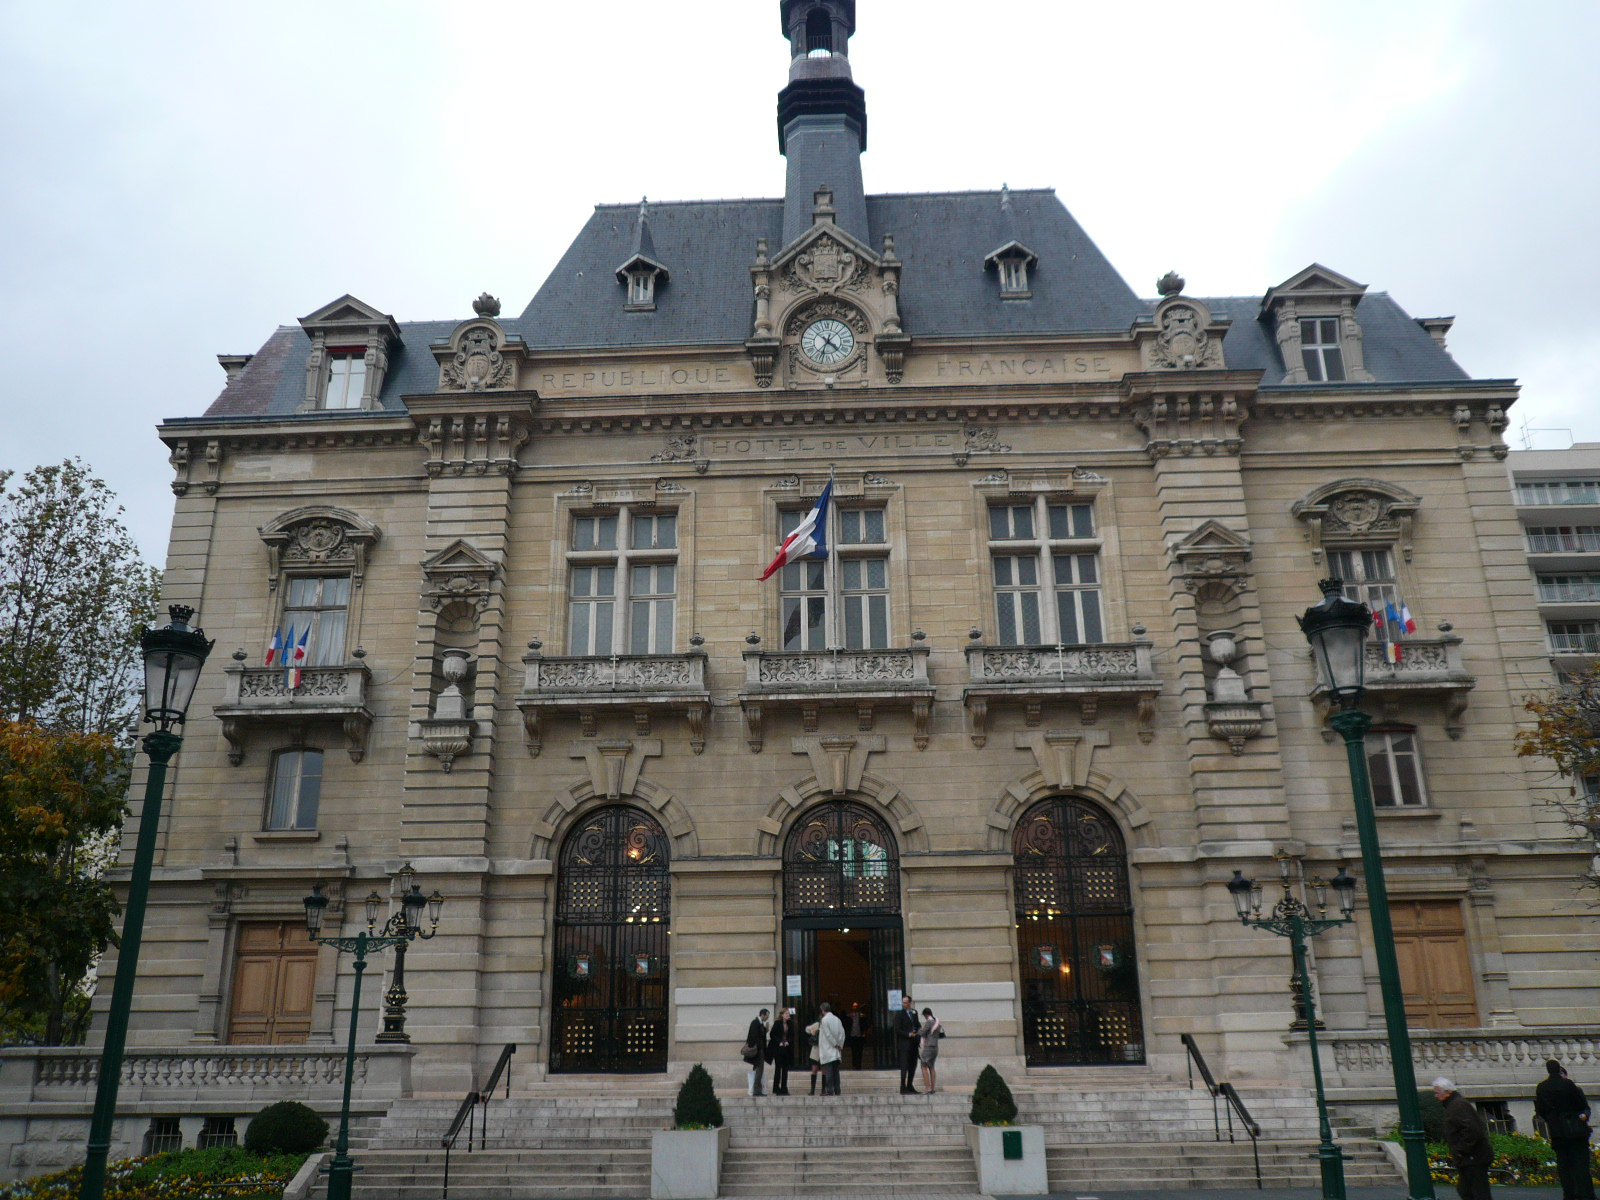 http://fr.academic.ru/pictures/frwiki/80/P1080870_Mairie_Colombes.JPG